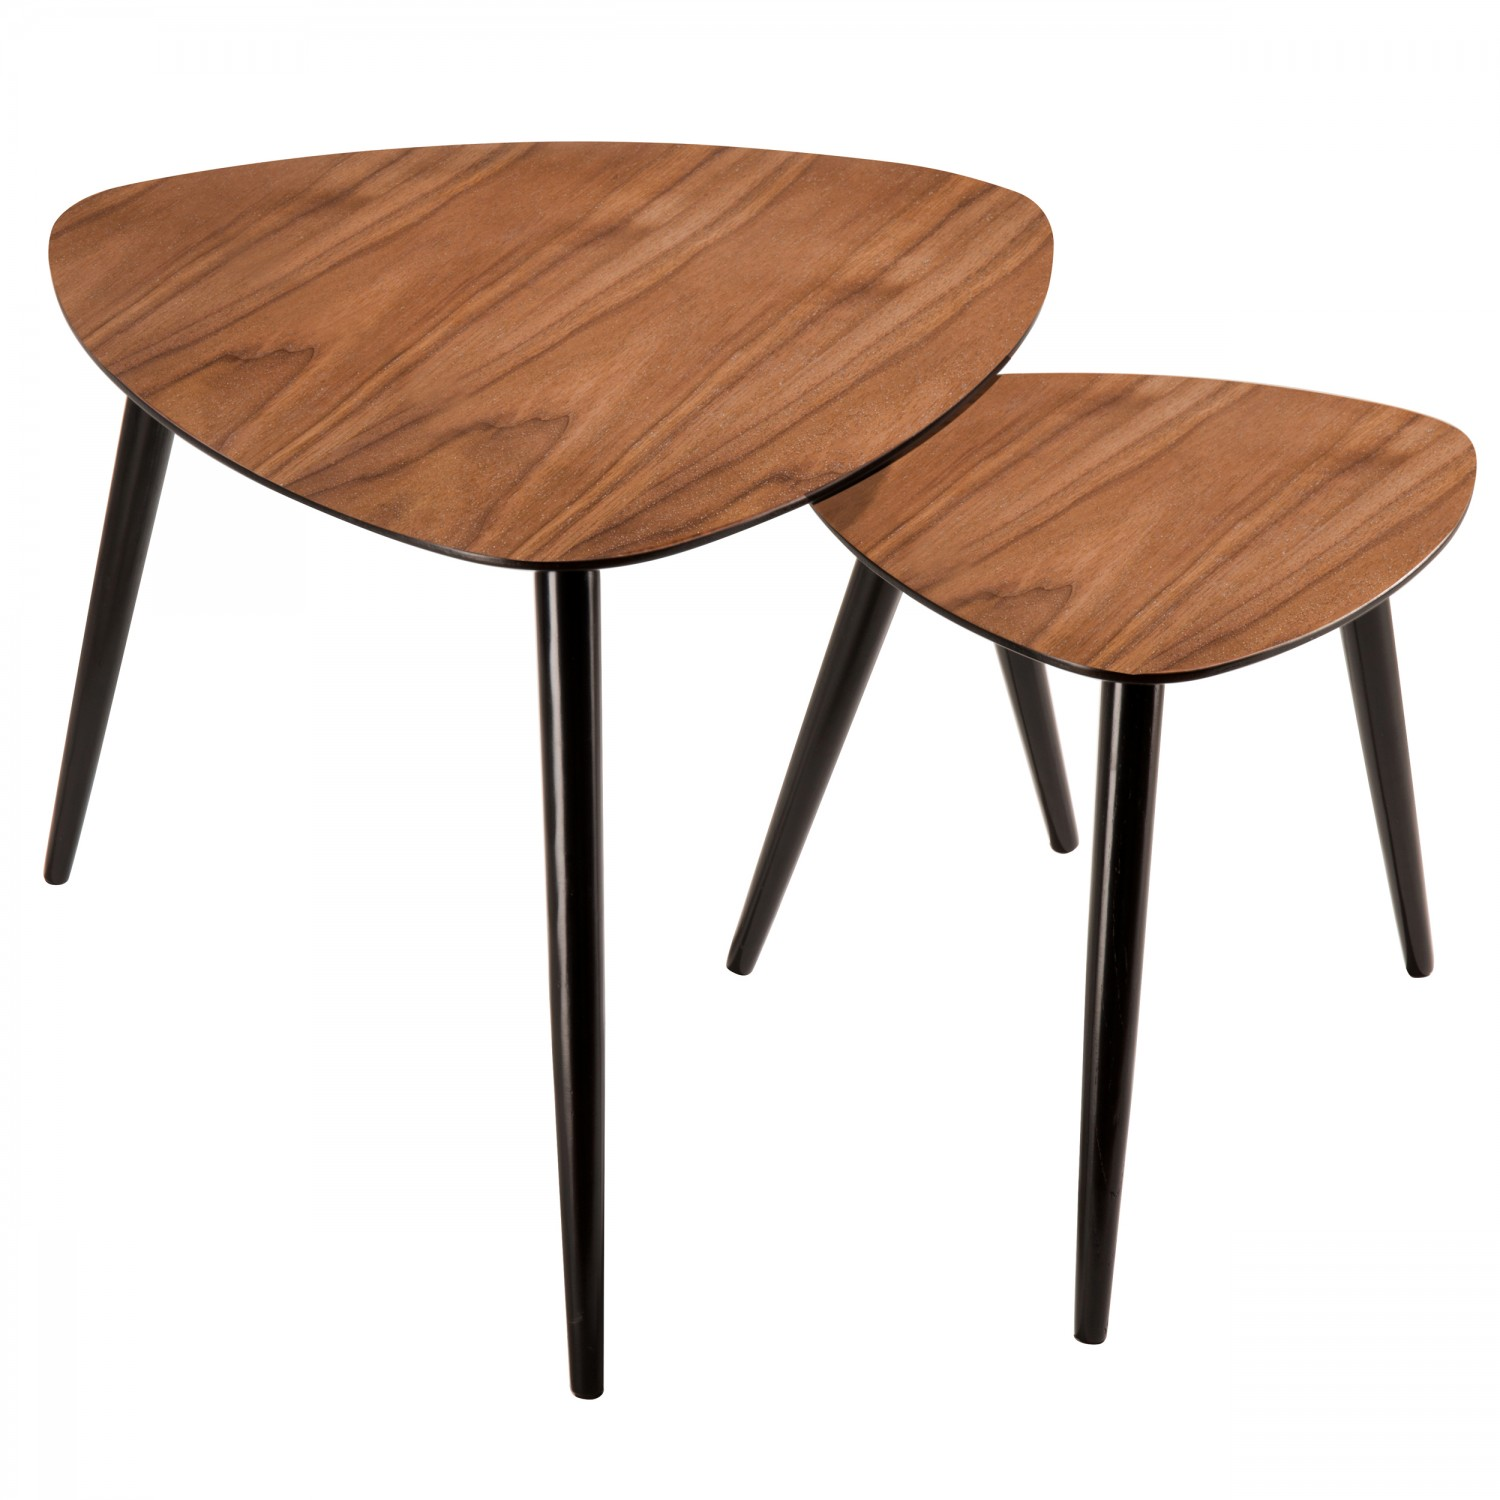 Tables basses gigognes en bois fonc lot de 2 koya design for 2 tables basses gigognes